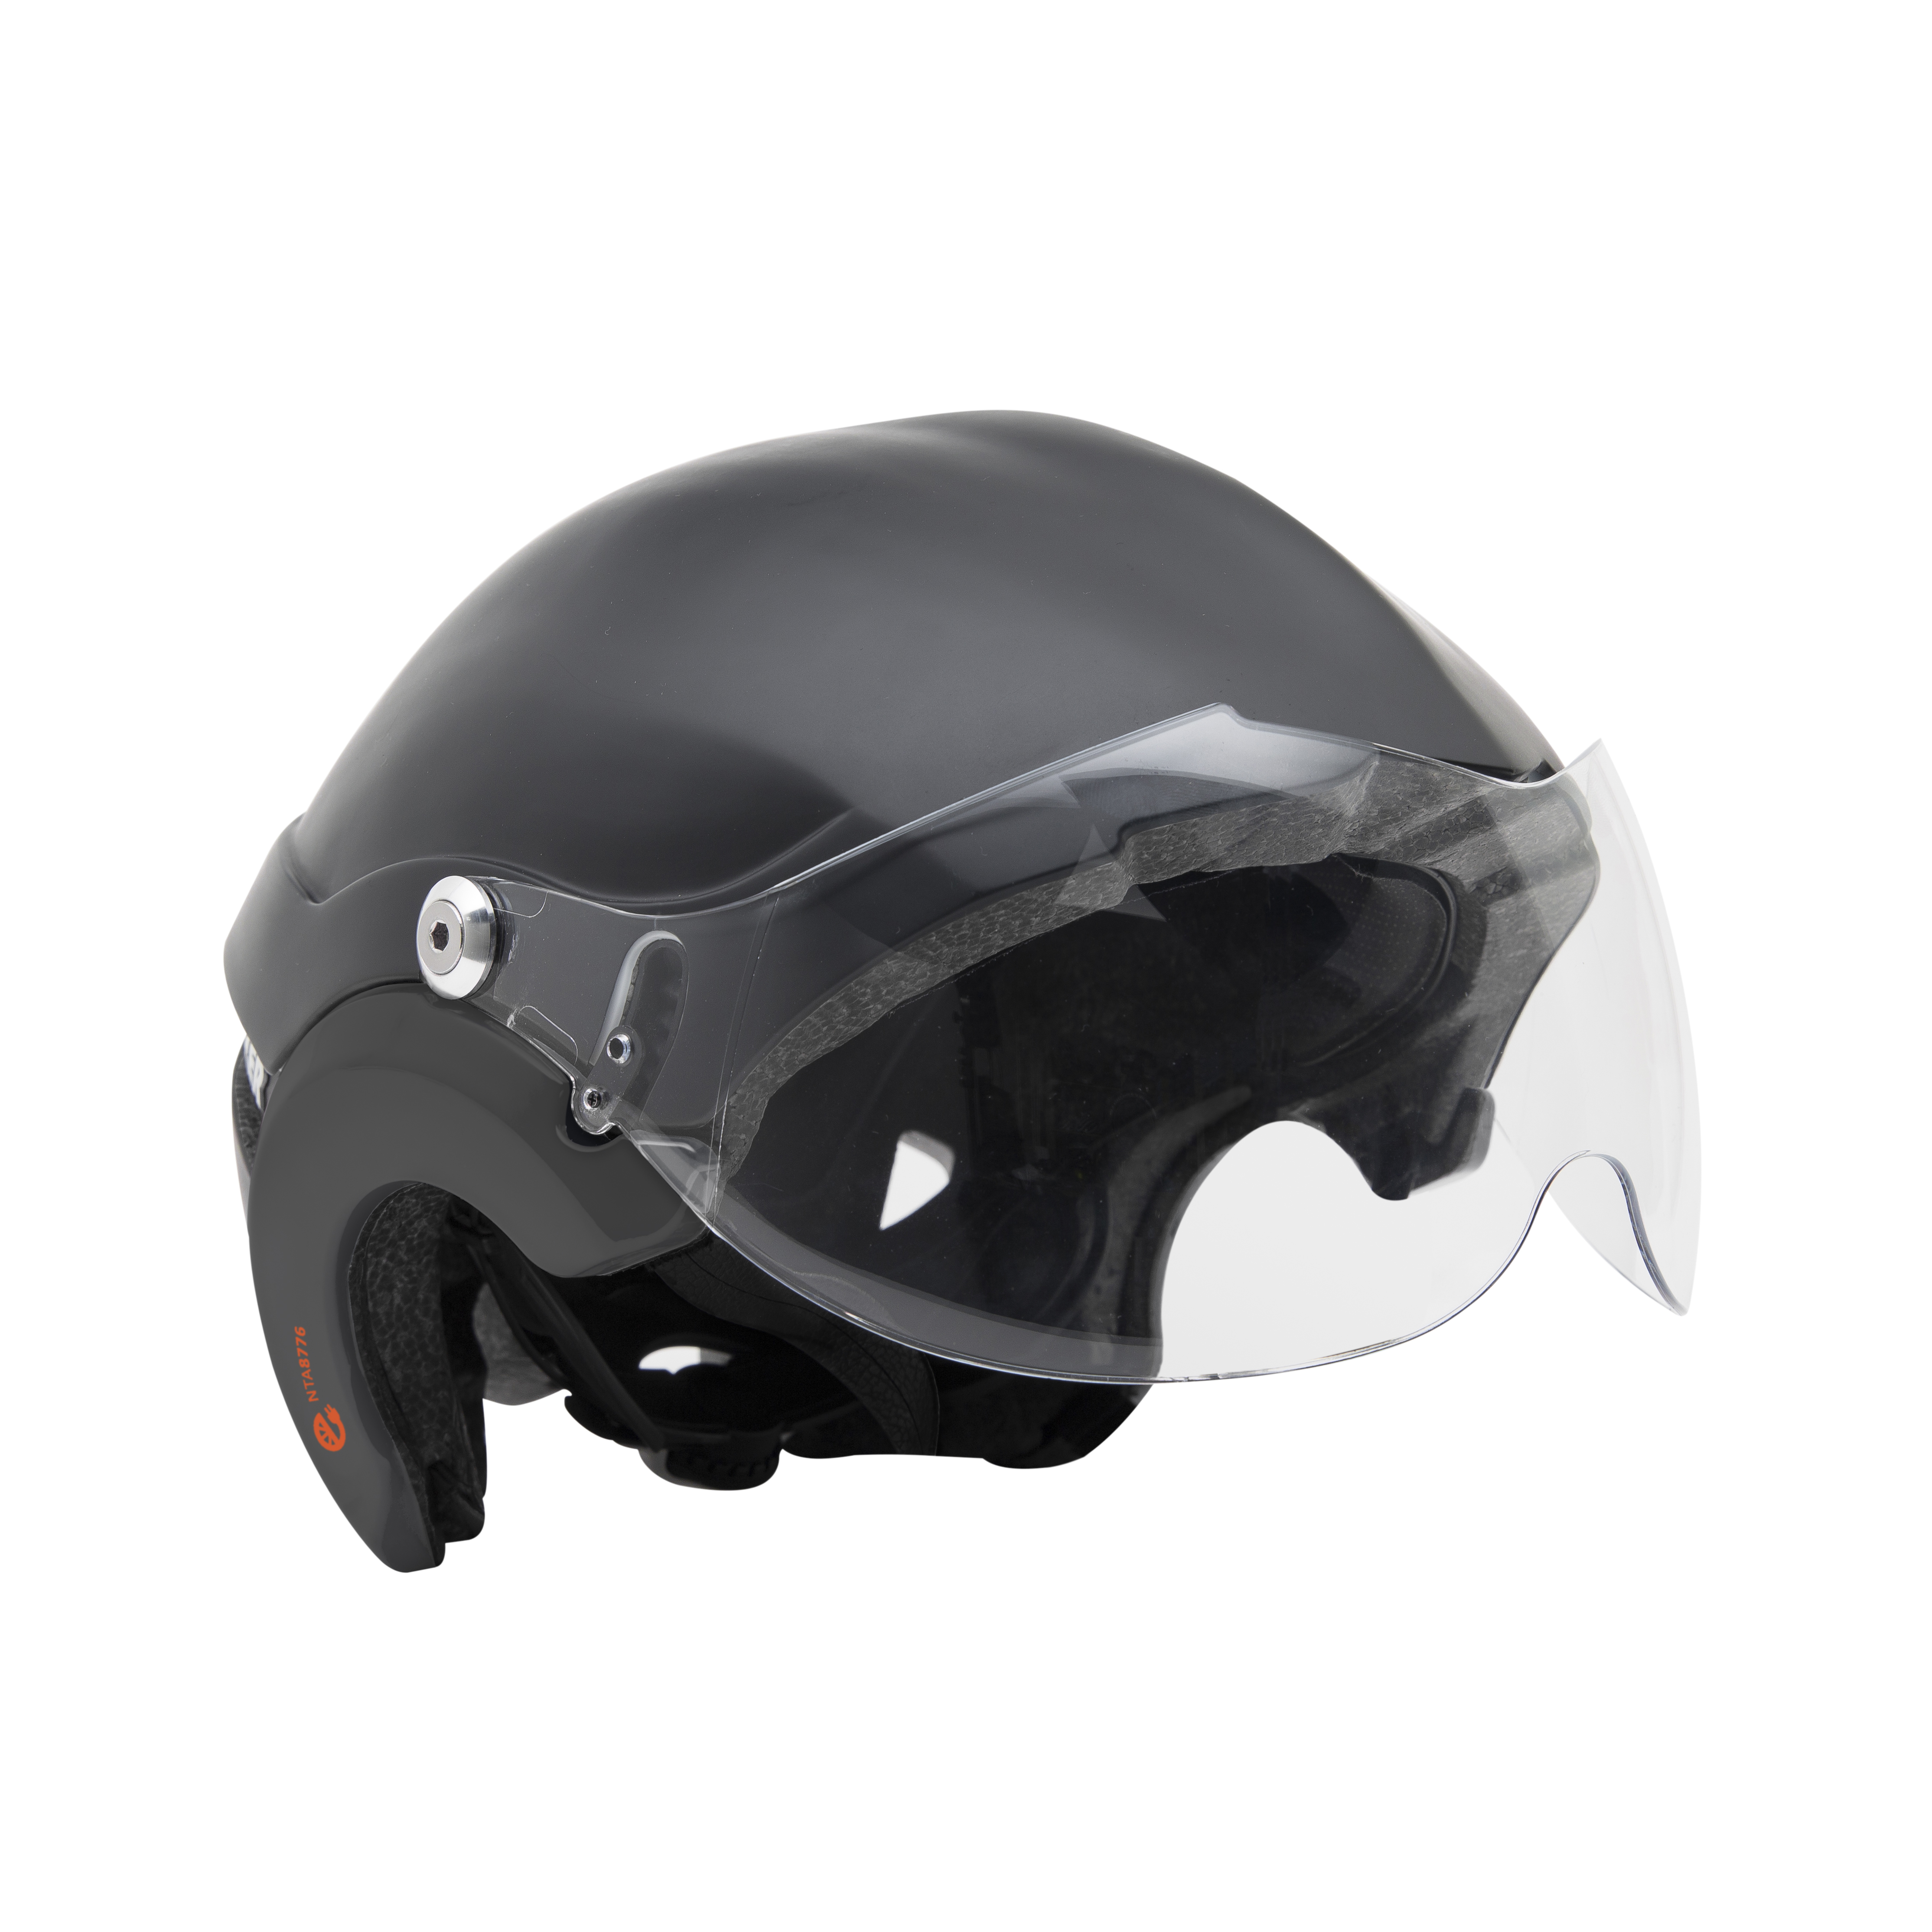 lazer s latest speed pedelec dedicated helmets. Black Bedroom Furniture Sets. Home Design Ideas